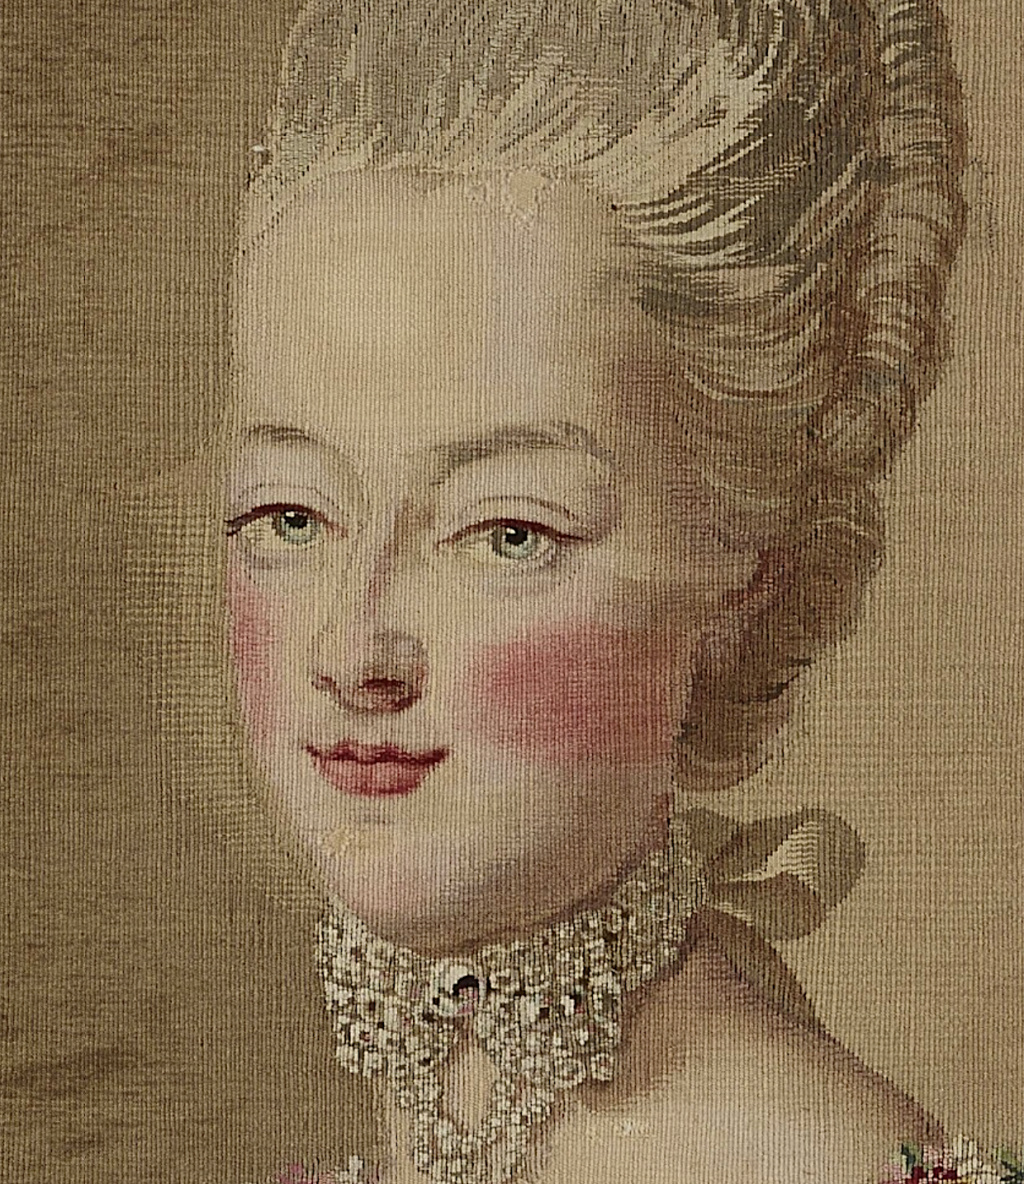 Tapisseries des Gobelins, atelier Cozette : collection de portraits, dont ceux de Marie-Antoinette Captu542